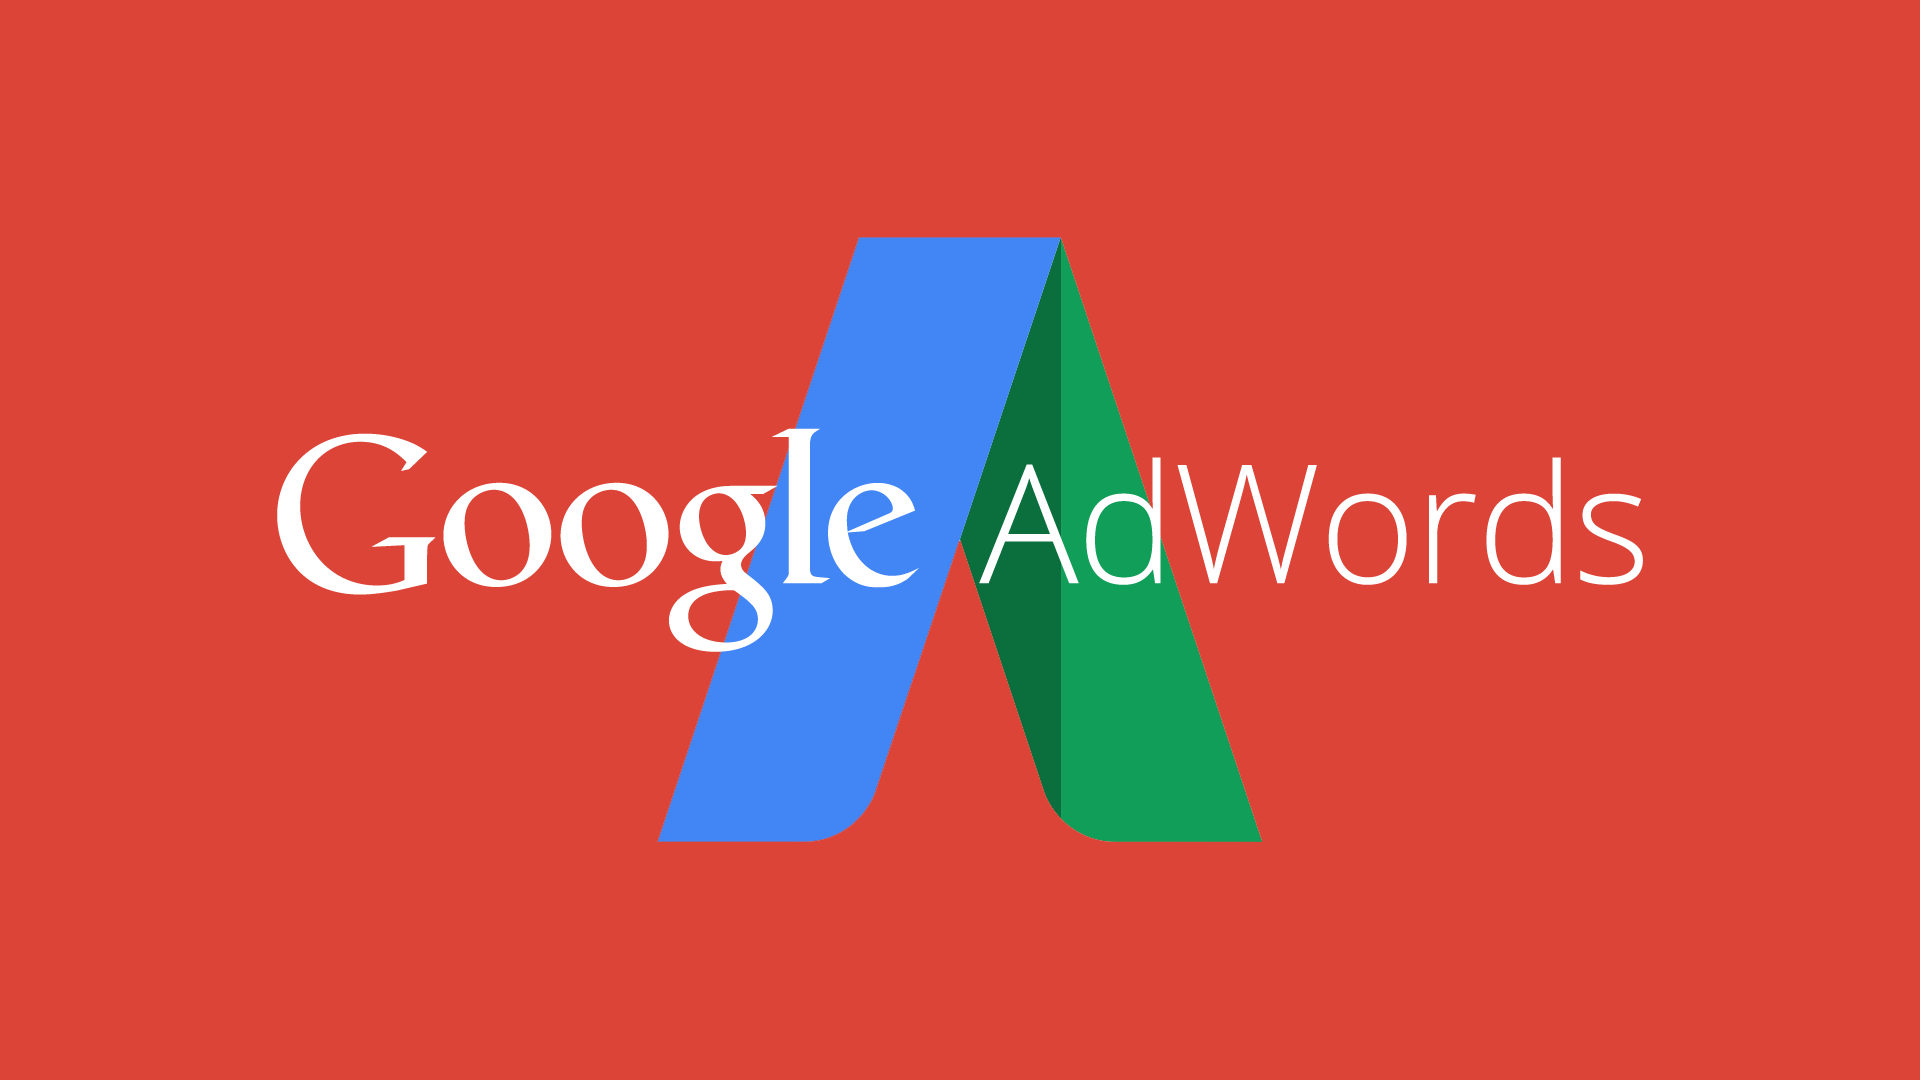 17 banned Google Adwords products you will never find on the platform